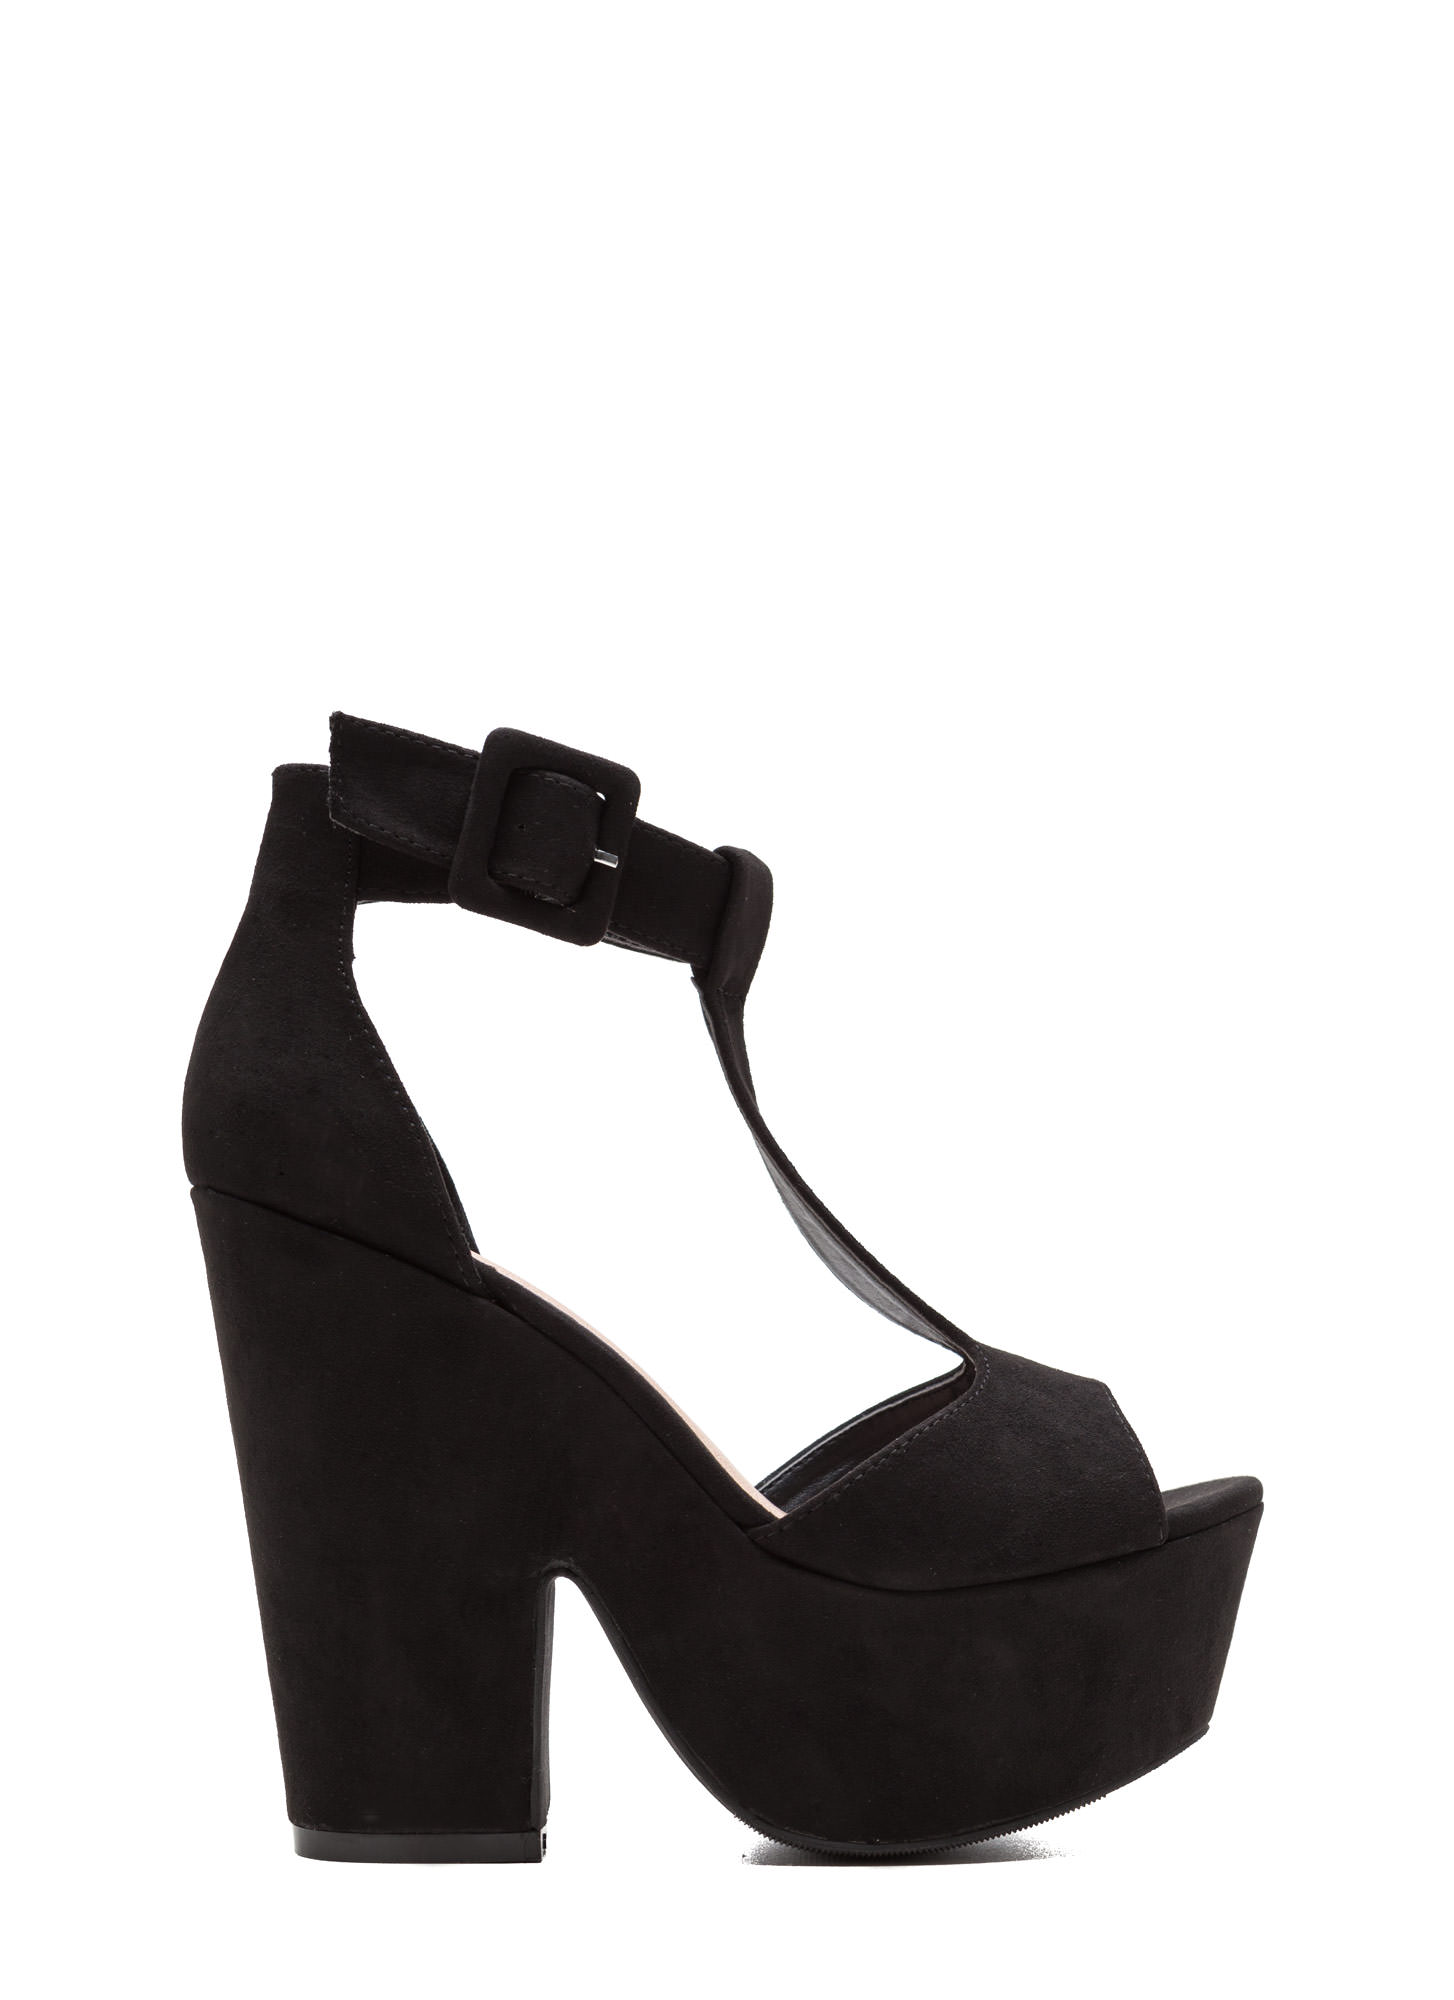 Thru Thick 'N Thin Faux Suede Heels BLACK